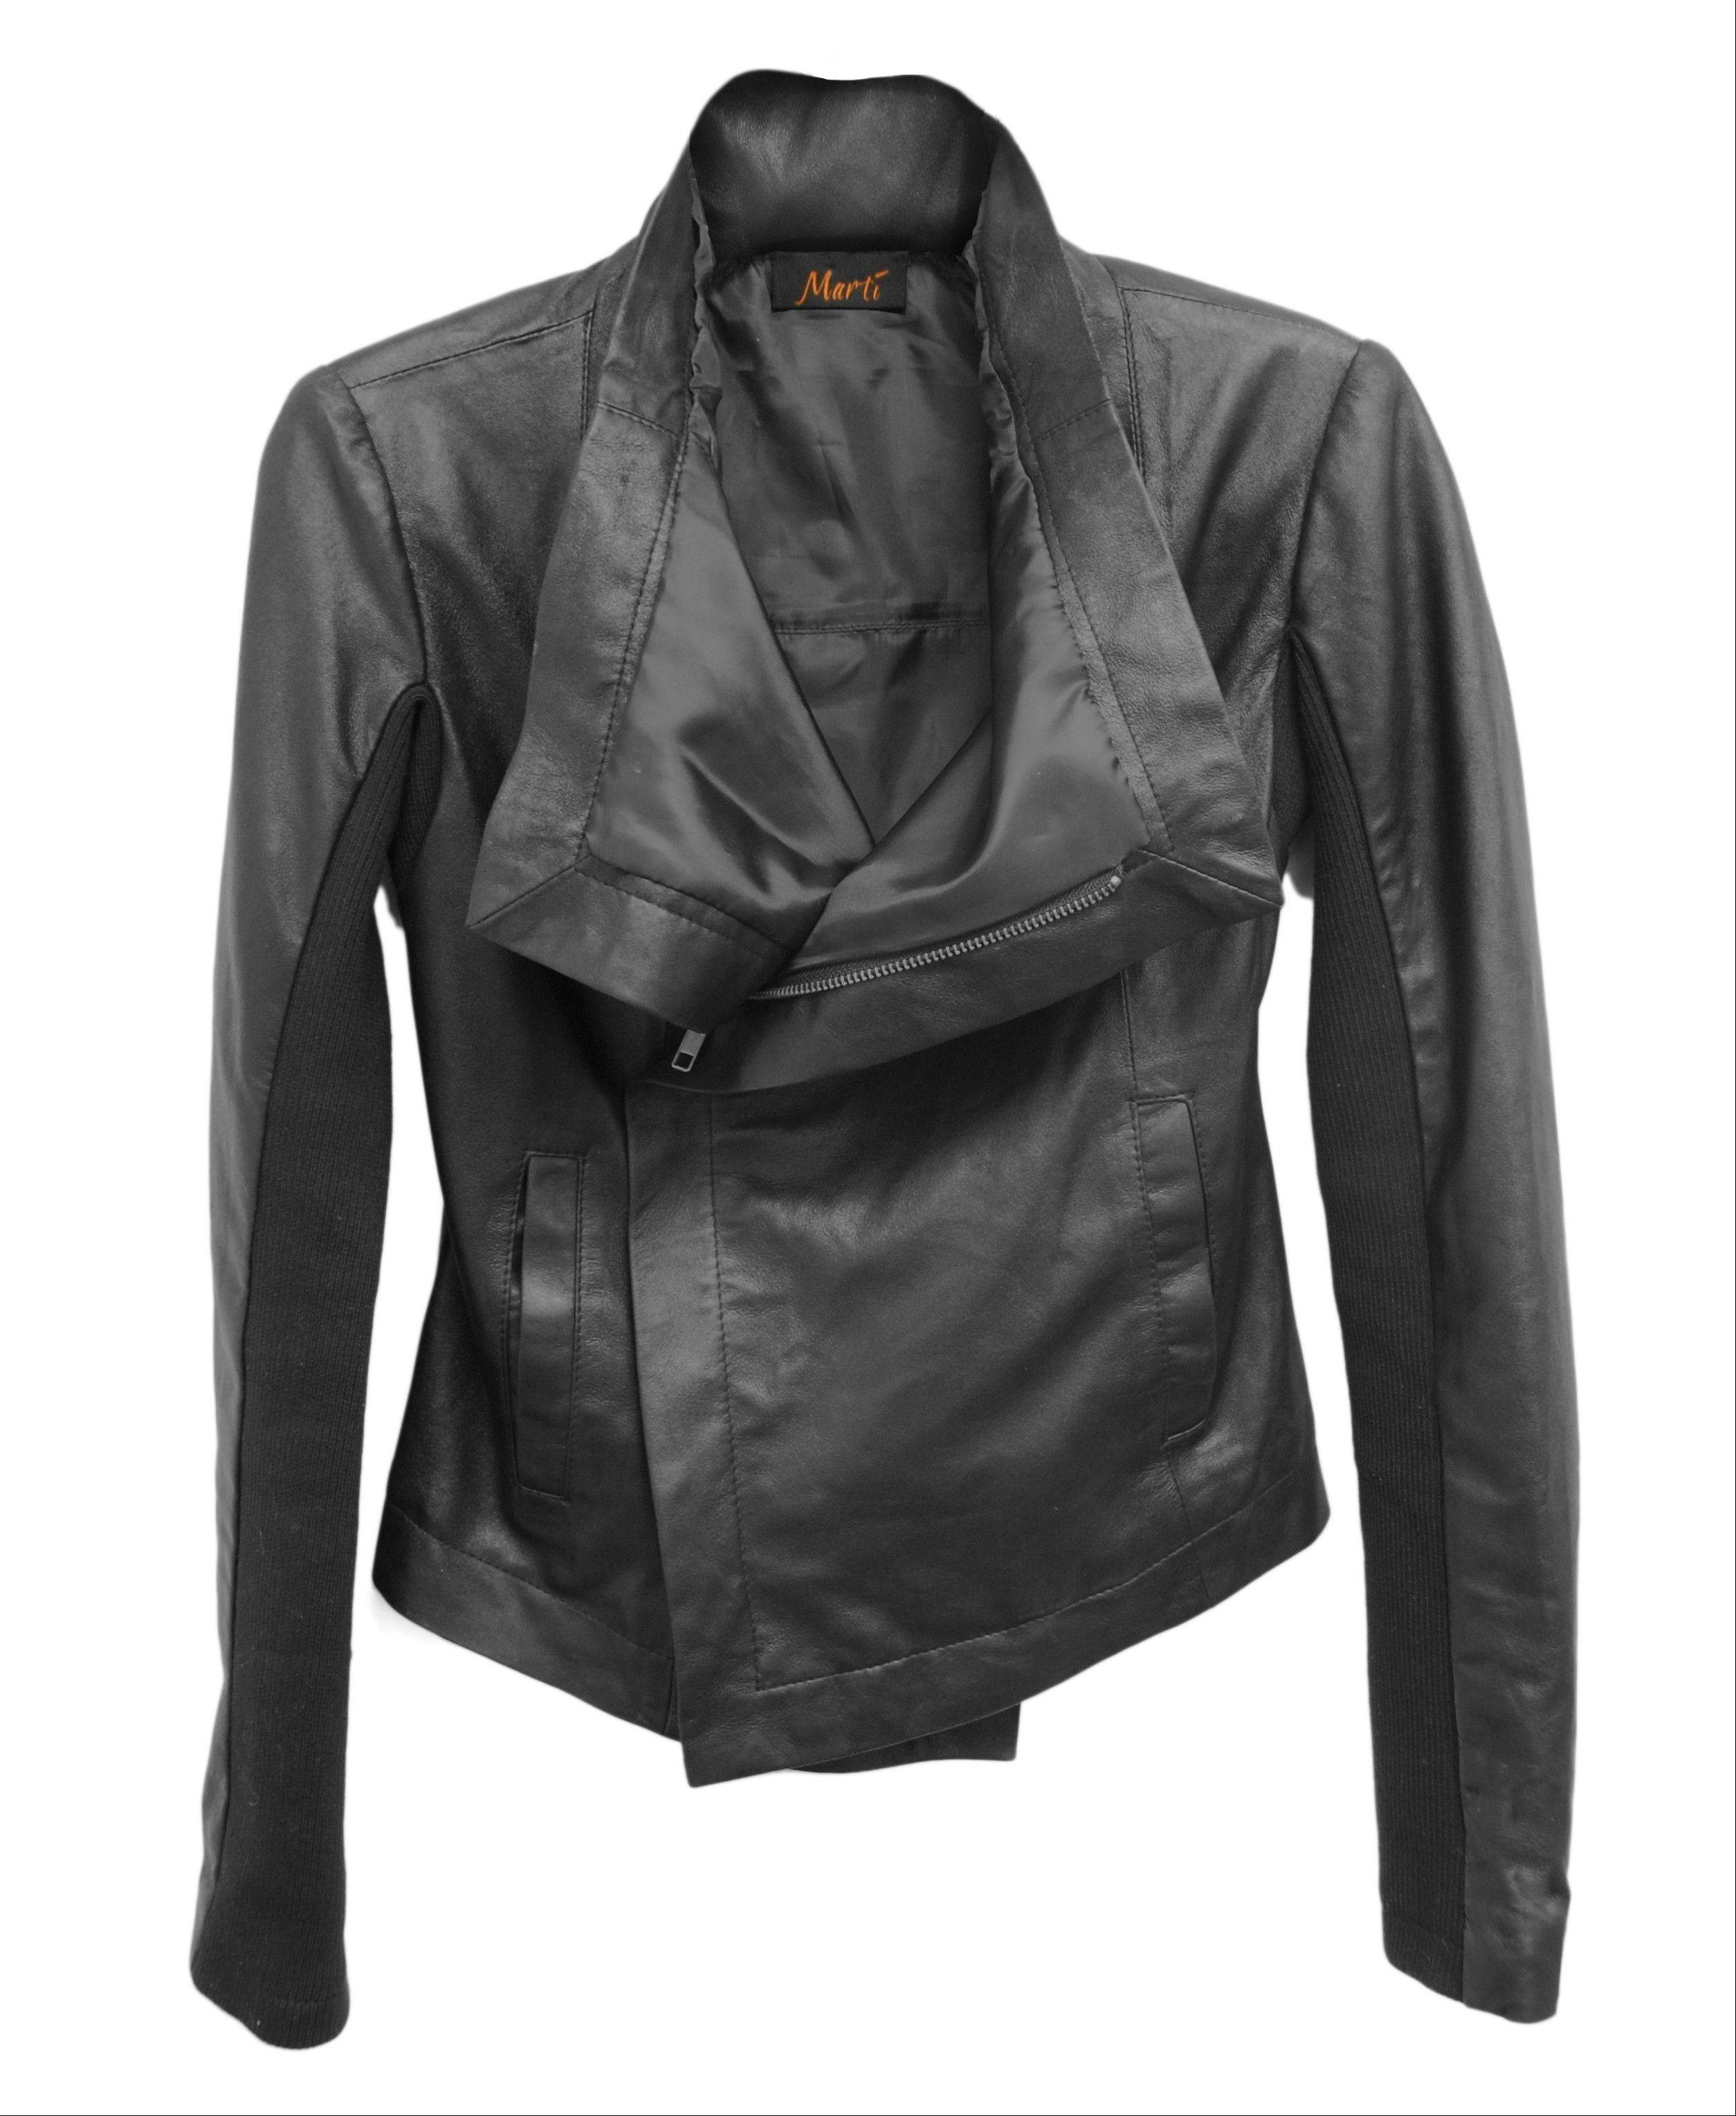 Marti shows a Lisette black leather jacket.